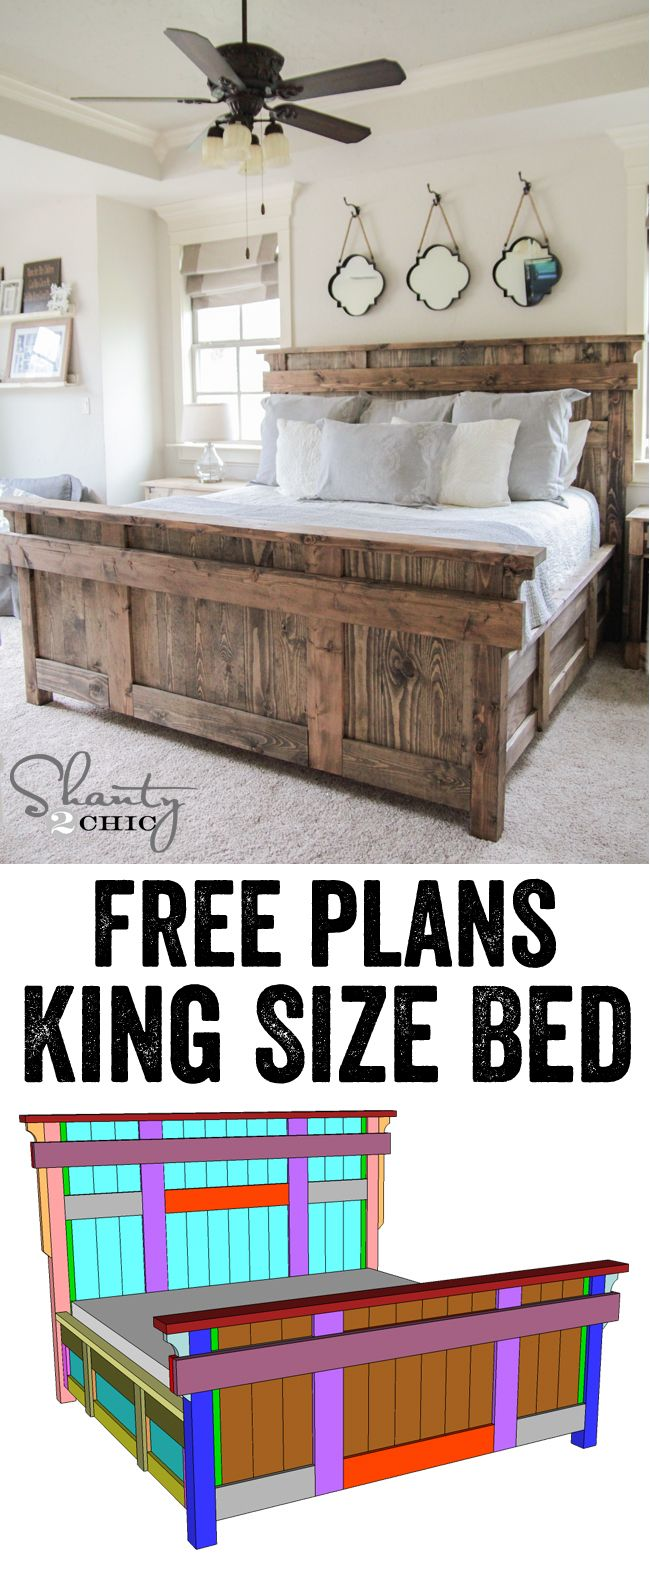 Diy King Size Bed Free Plans Apartment Pinterest Diy Bed Frame